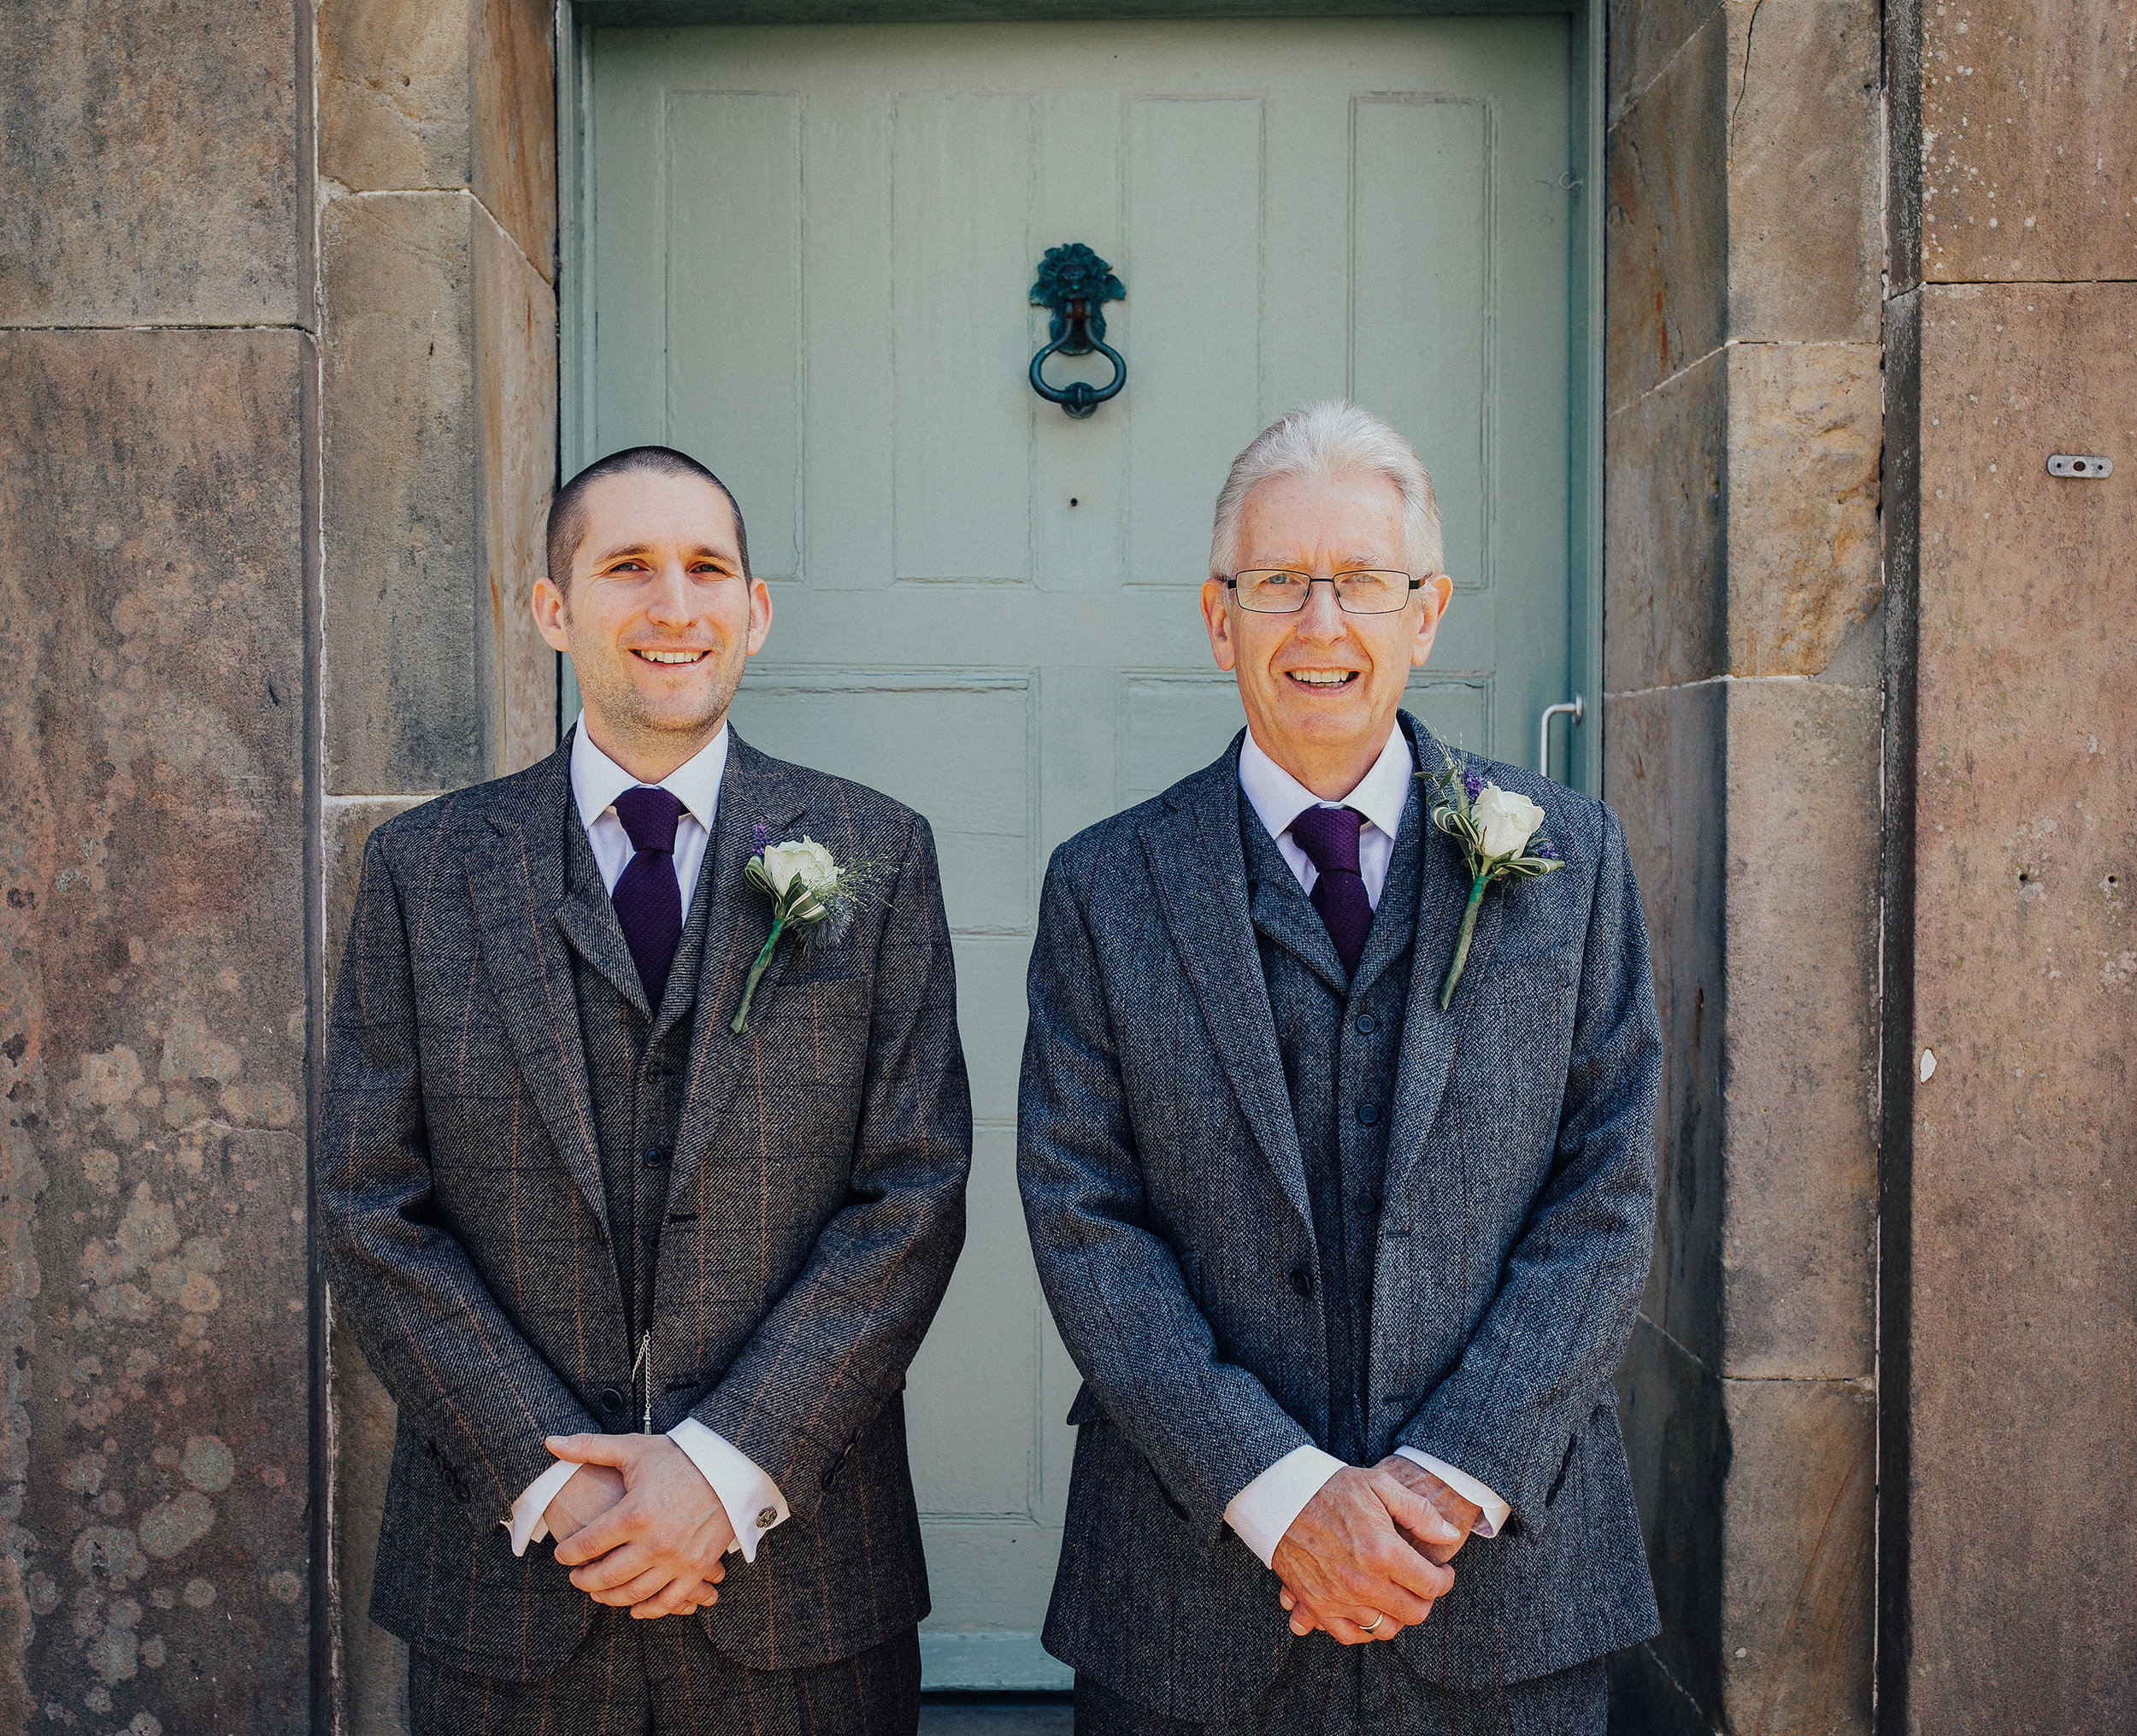 SCOTTISH_ELOPEMENT_PHOTOGRAPHER_PJ_PHILLIPS_PHOTOGRAPHY_36.jpg